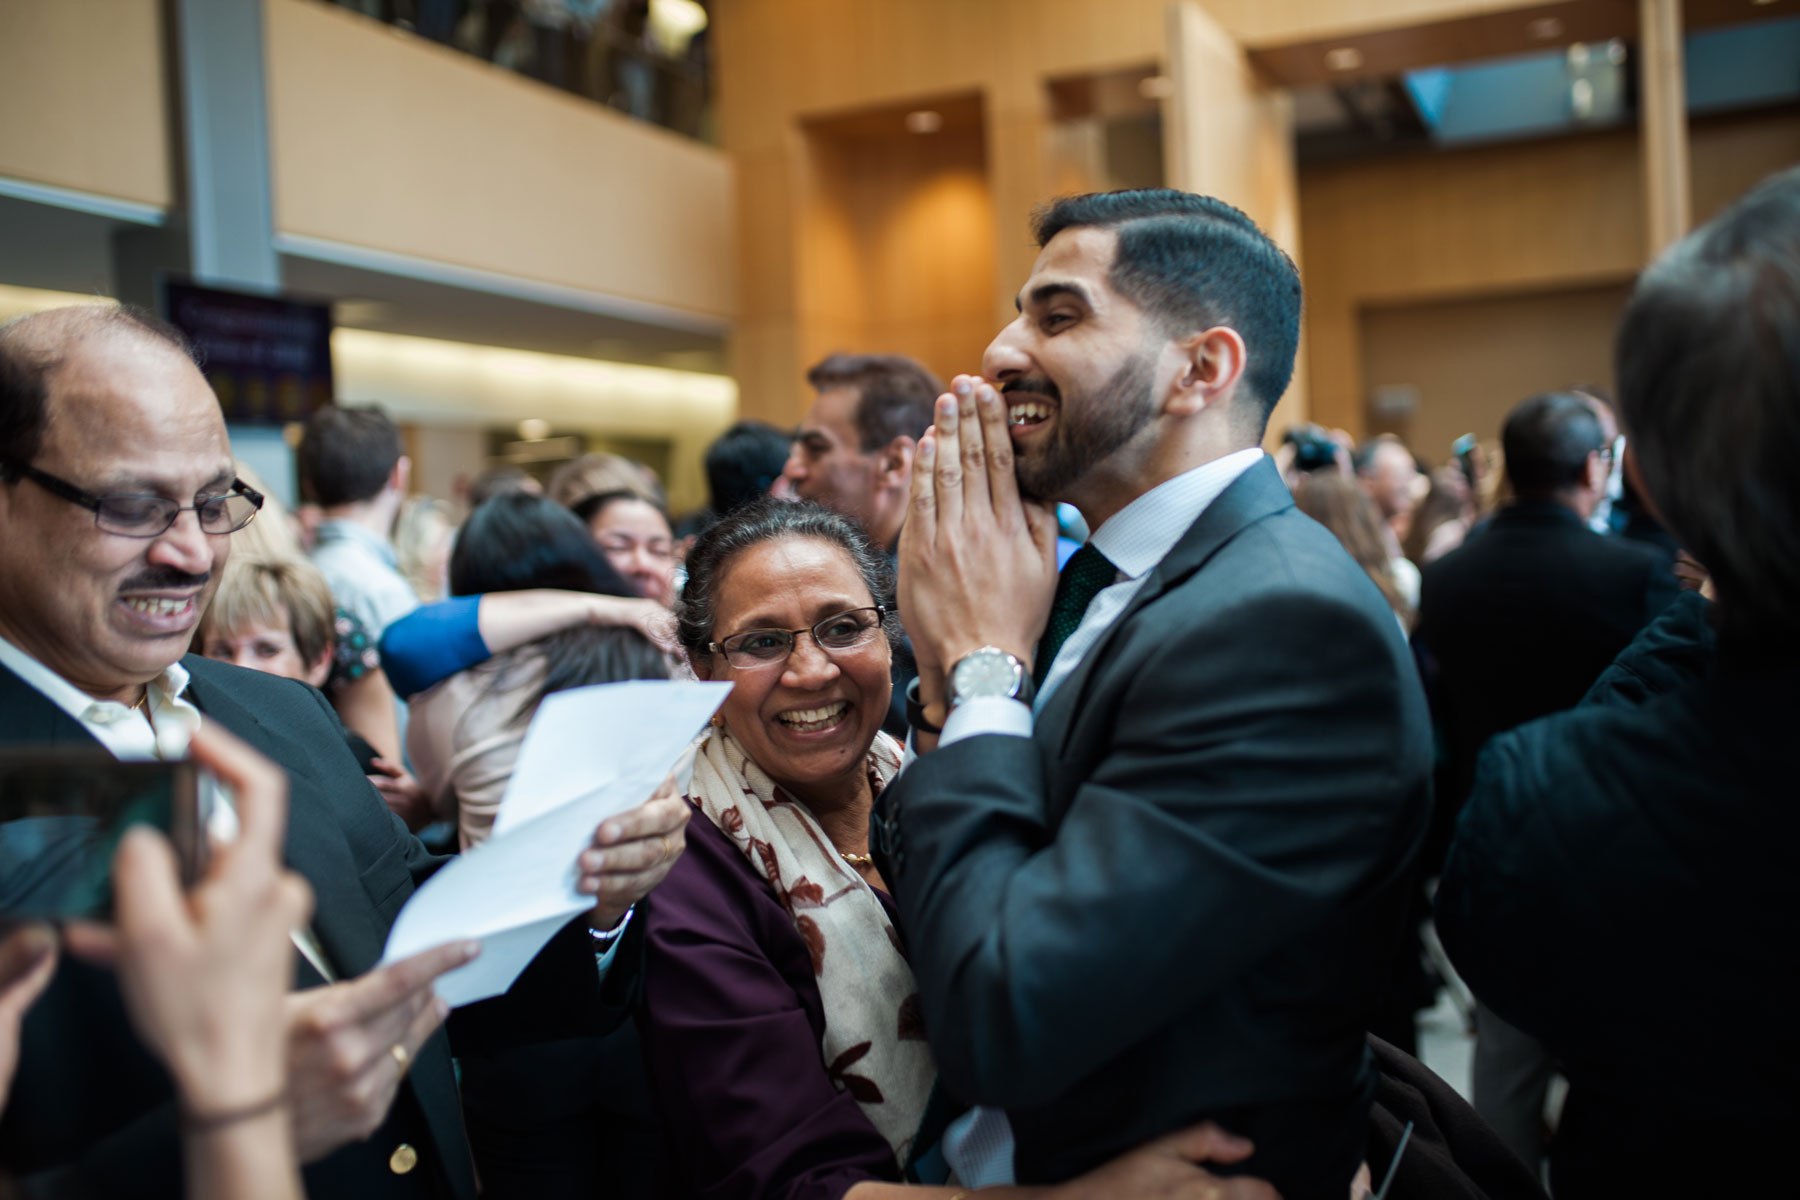 Andy Dowd's photograph captures Match Day at UMass Medical School